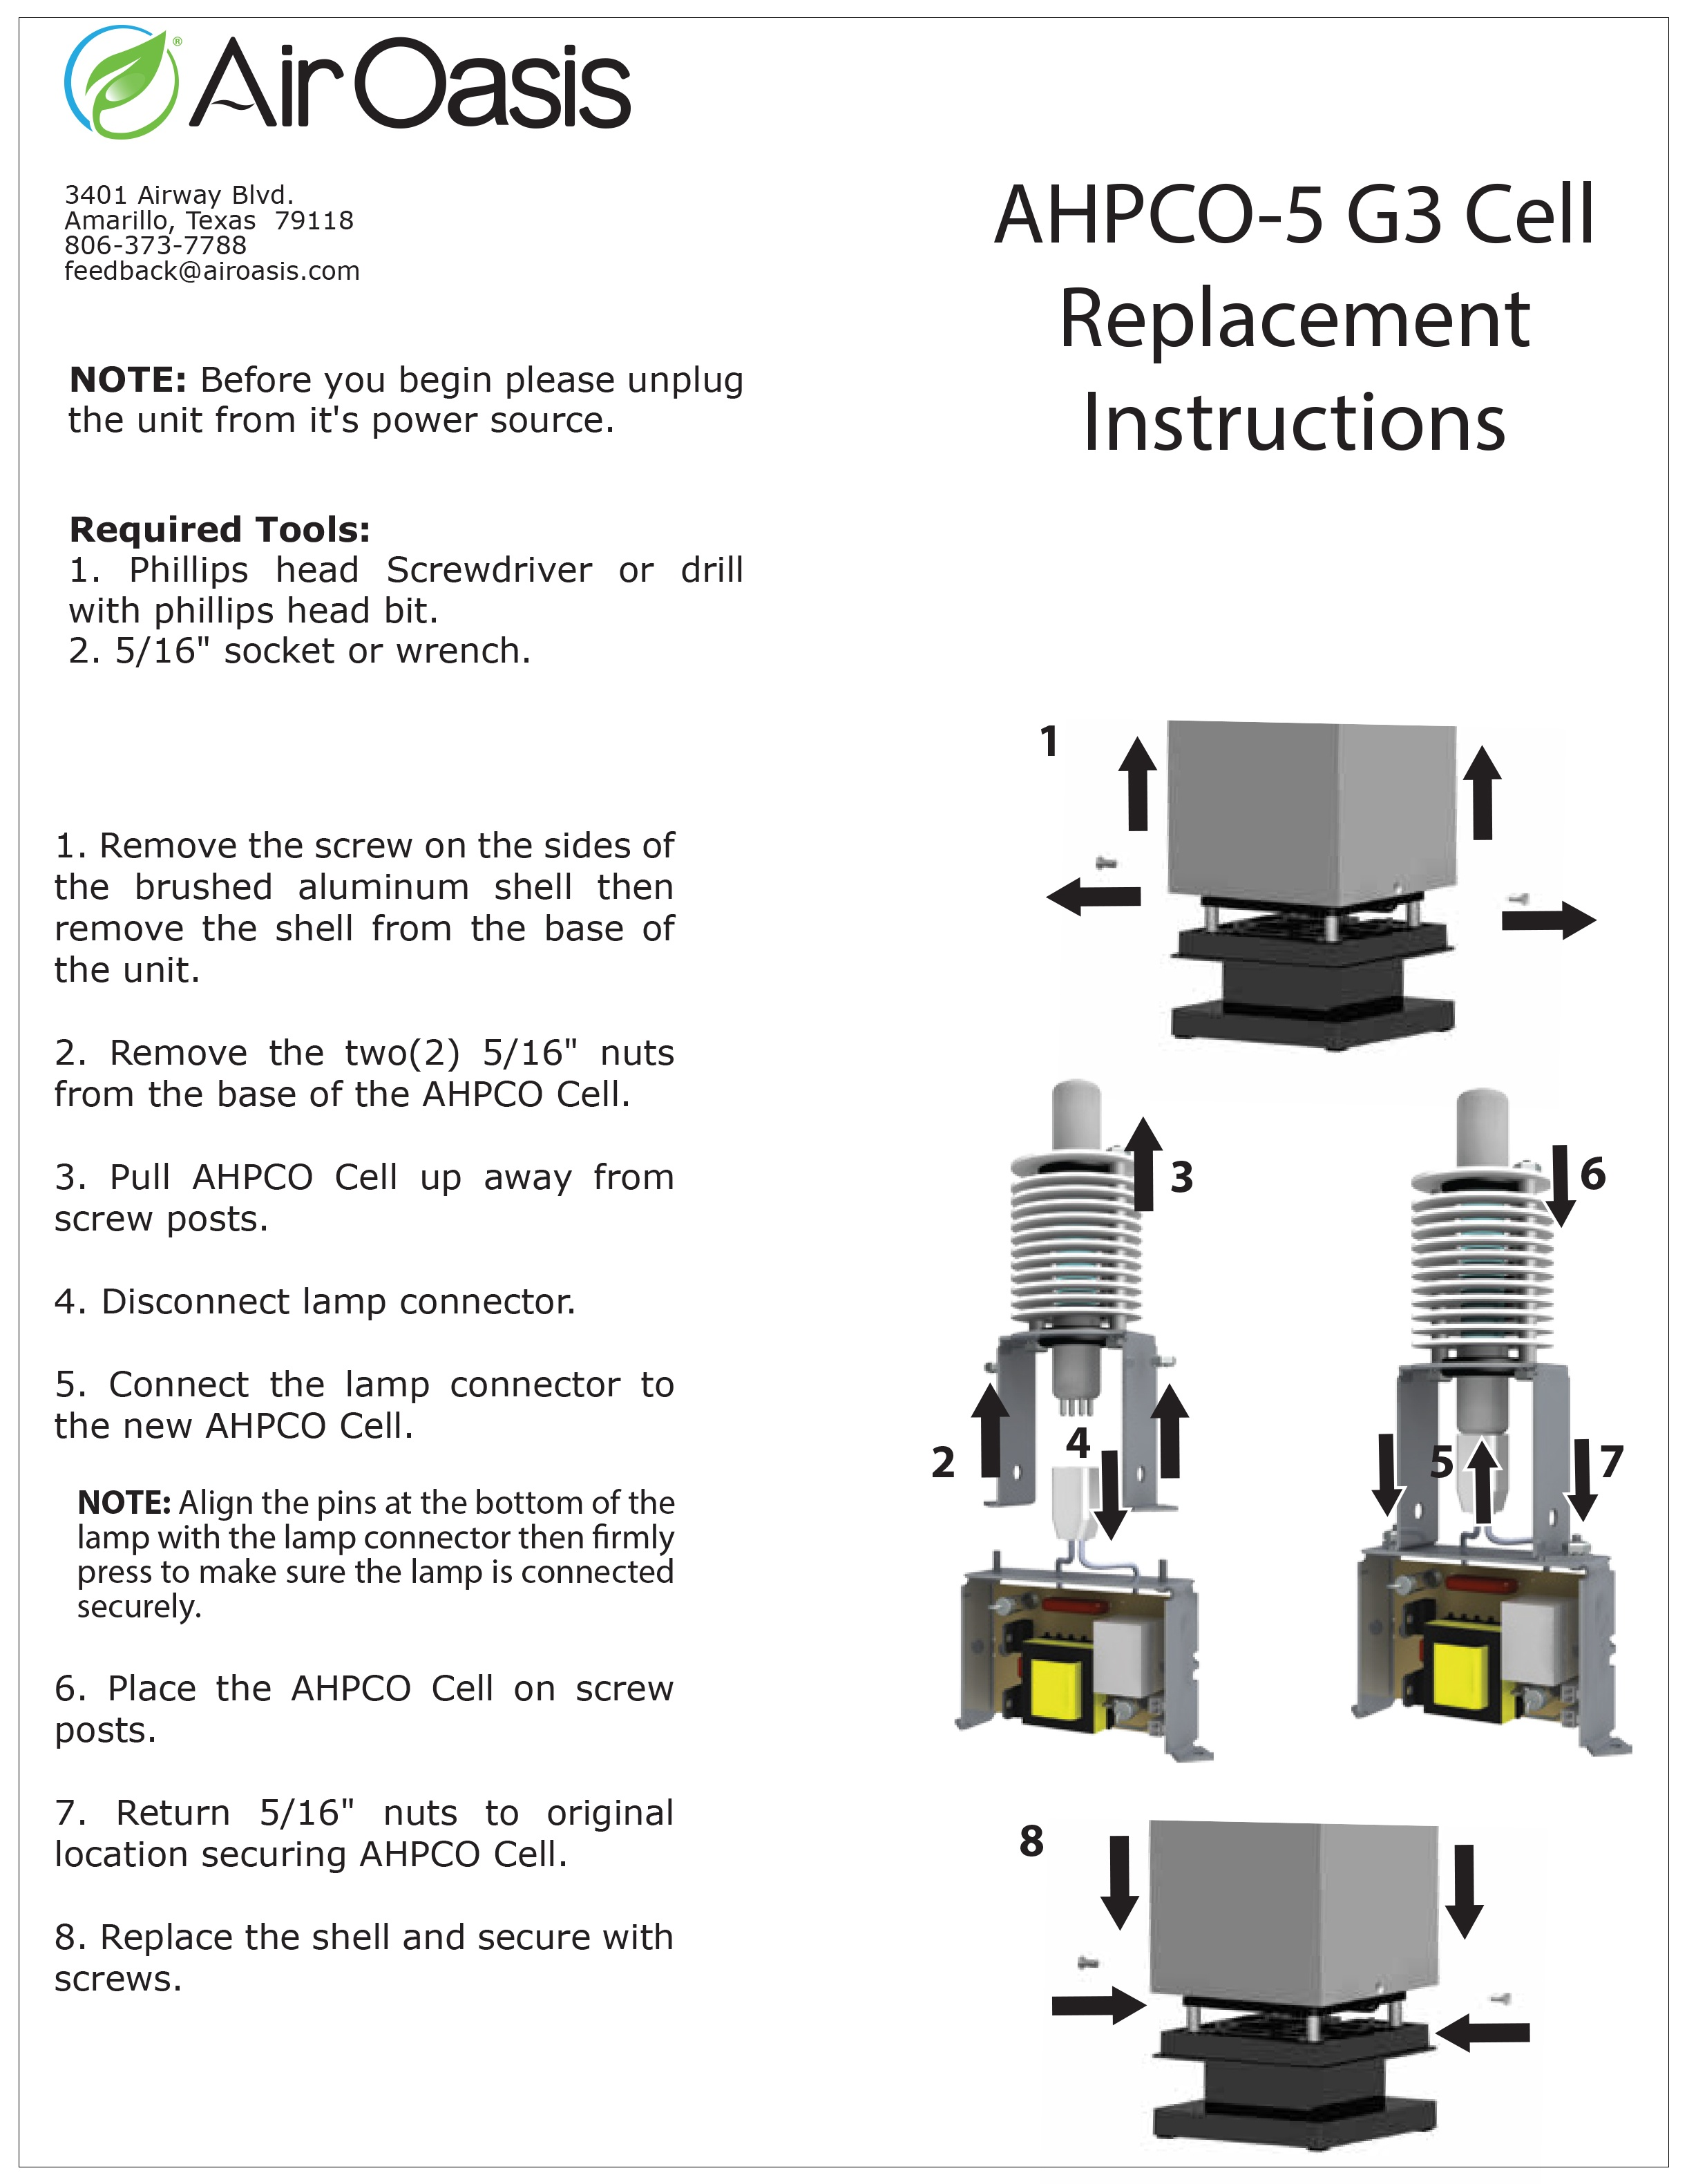 AHPCO-5 G3 Replacement Instructions